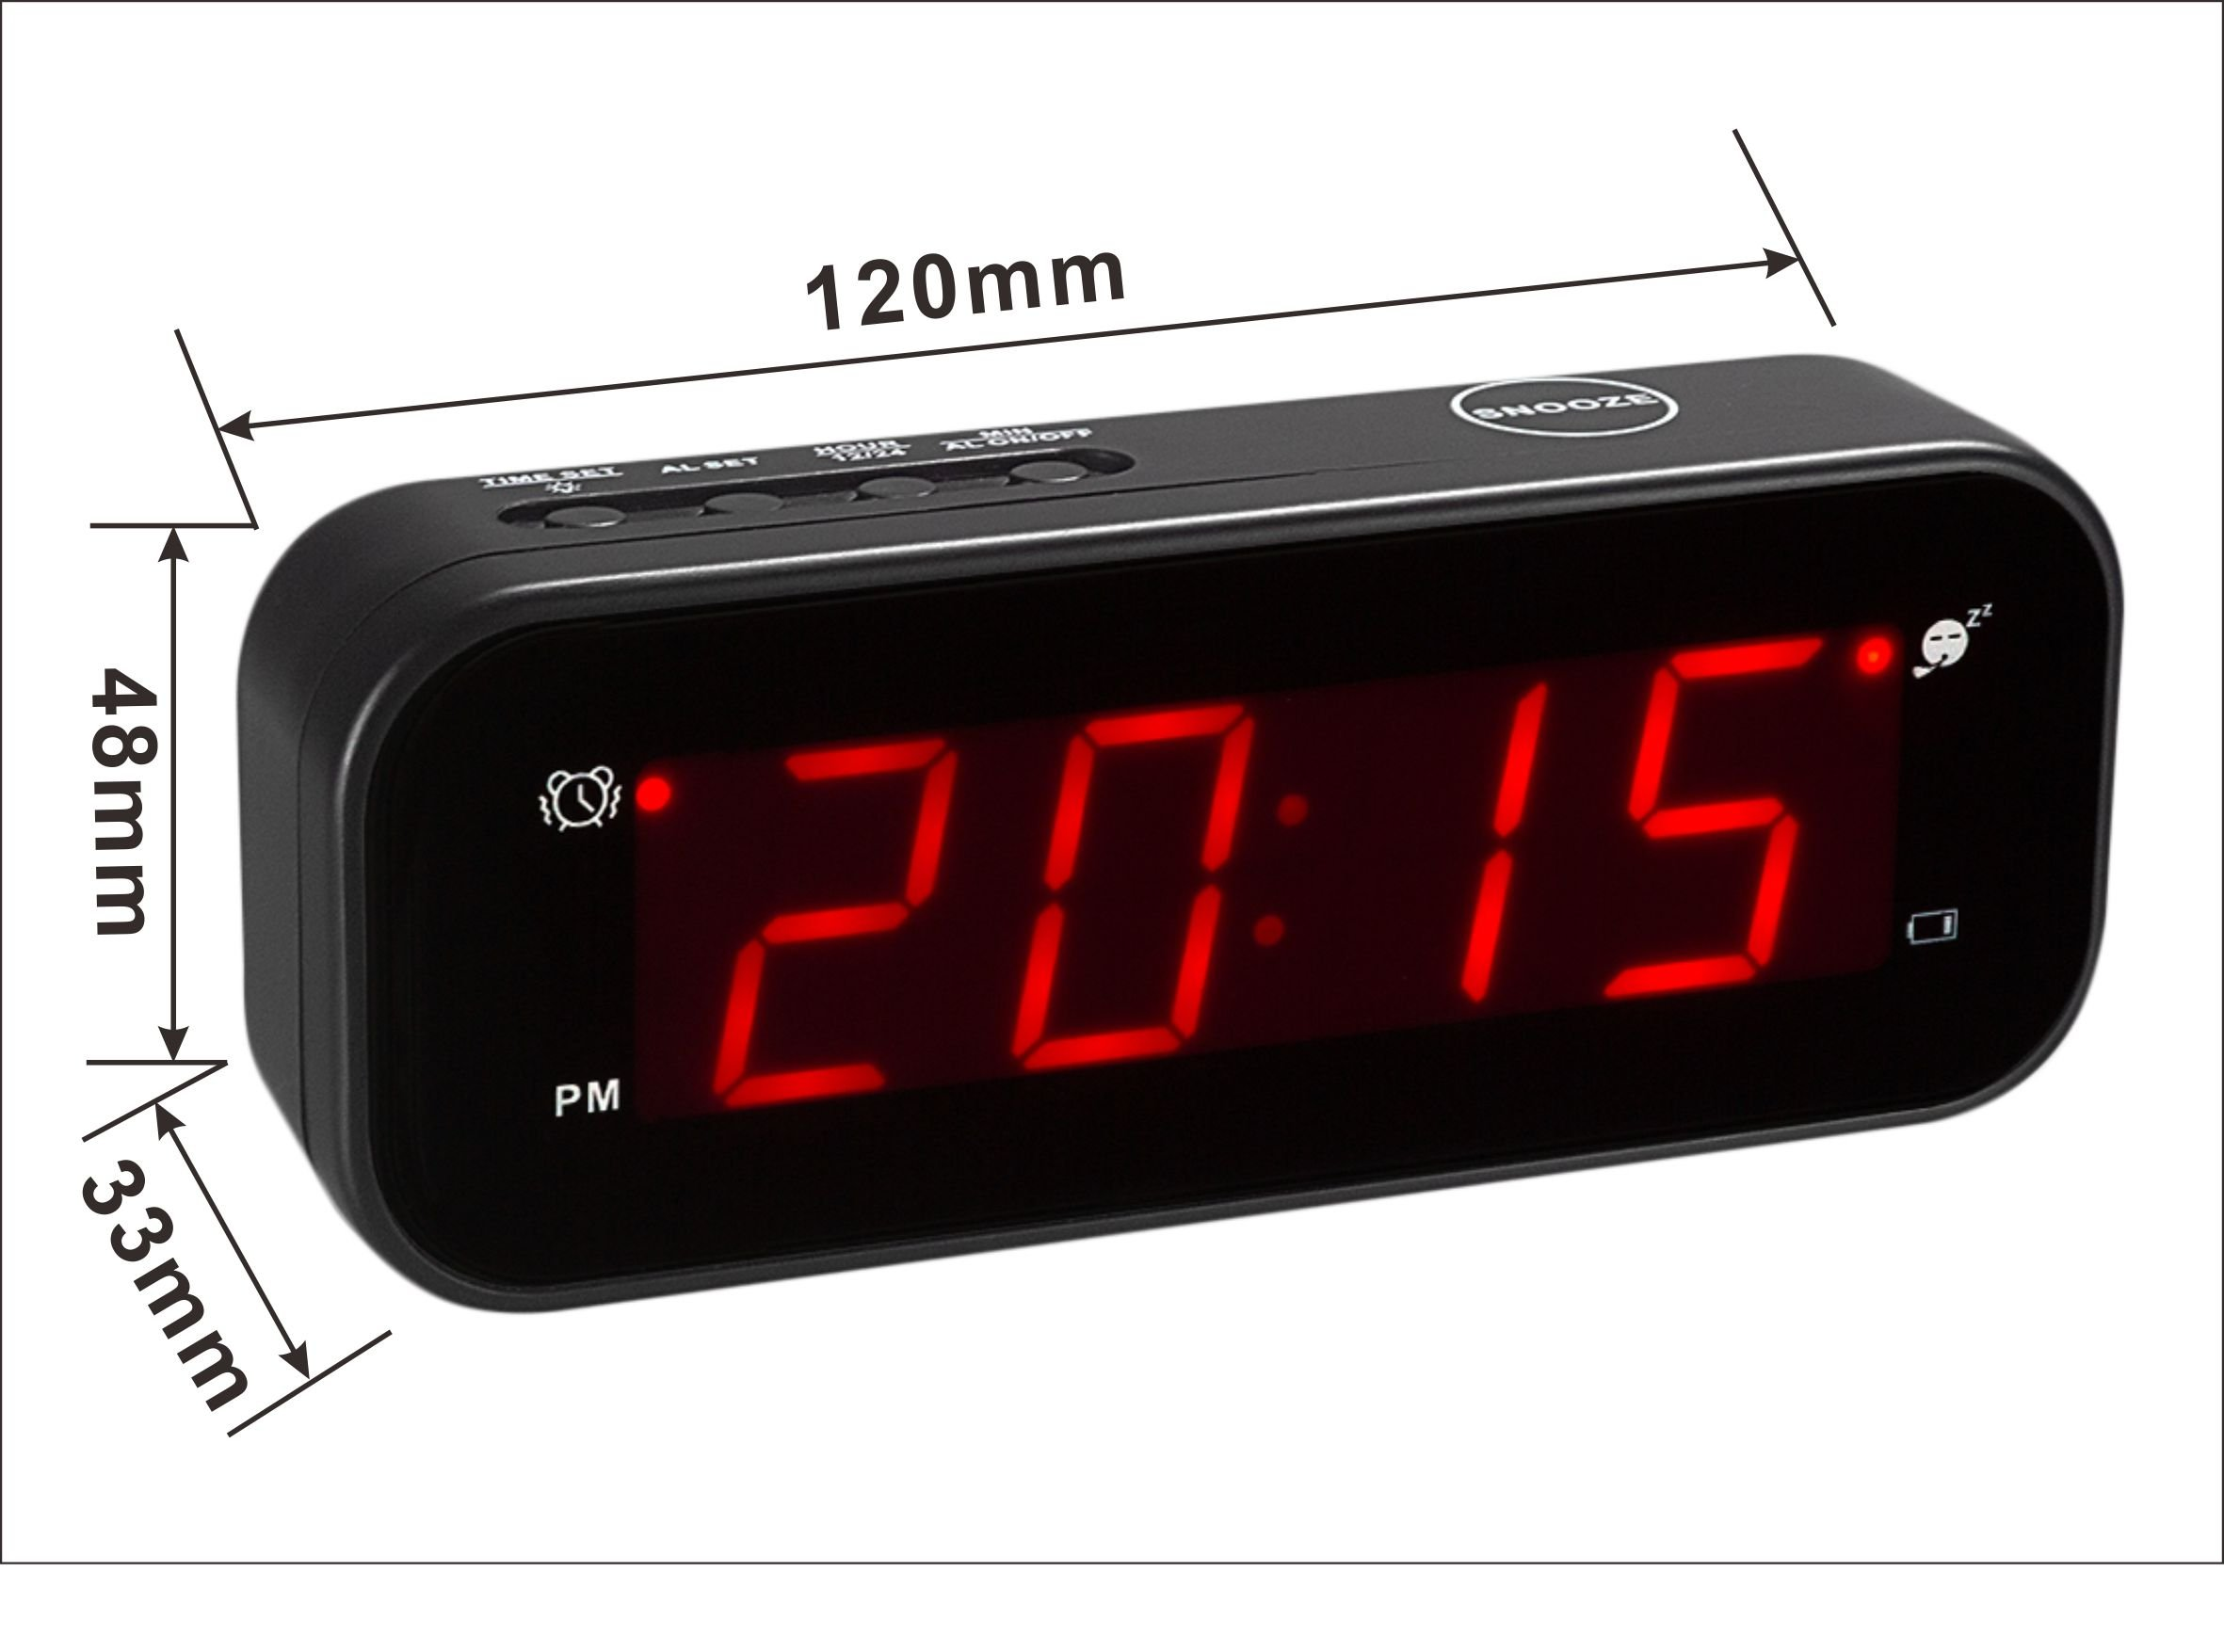 kwanwa small digital alarm clock for travel with led. Black Bedroom Furniture Sets. Home Design Ideas